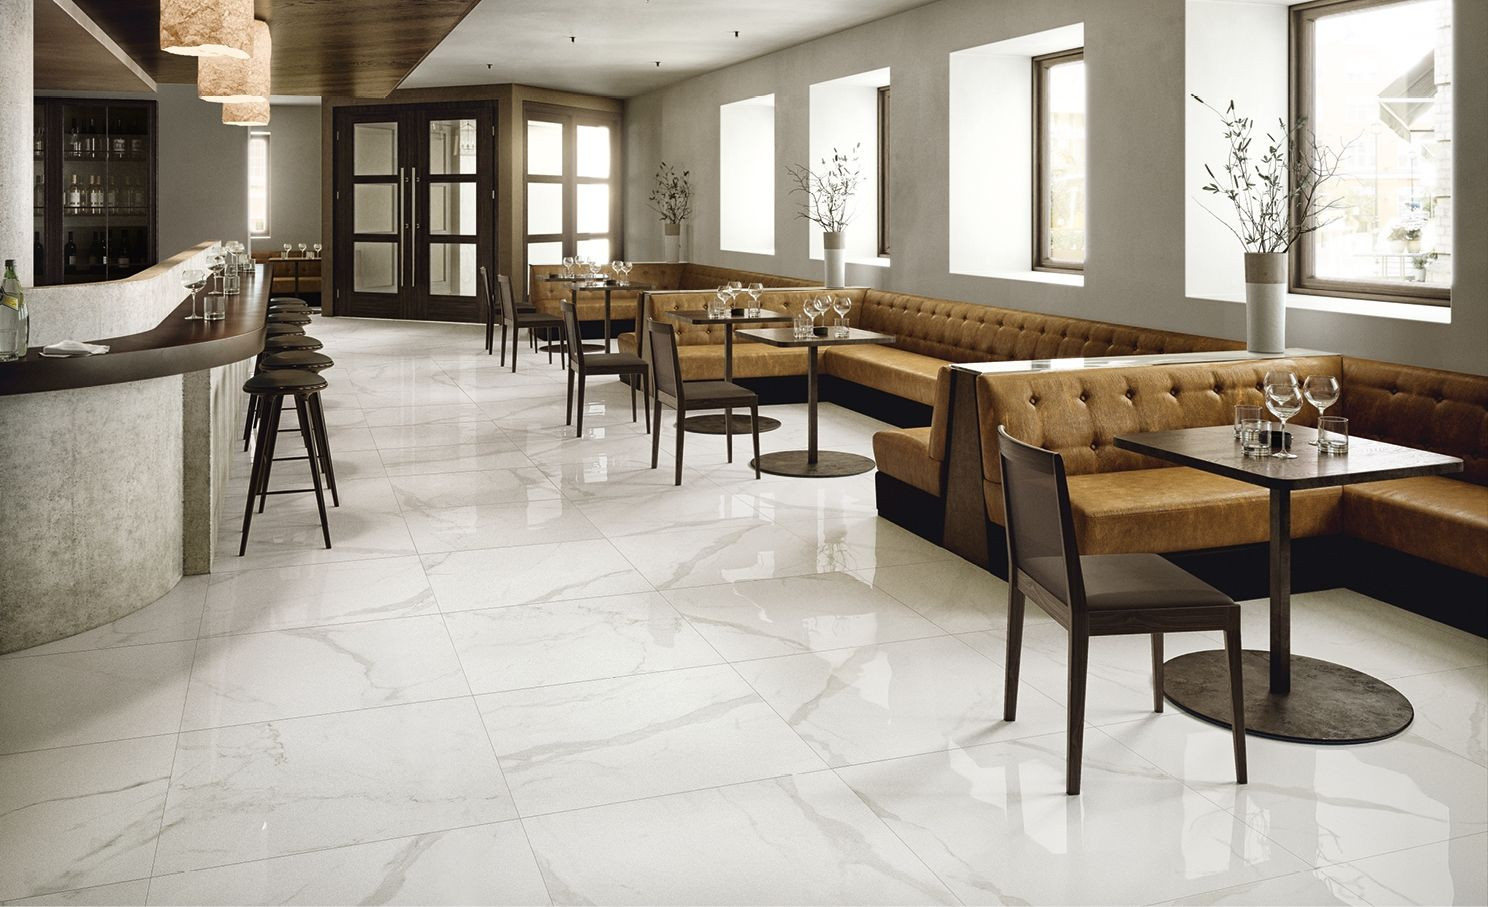 How to Choose the Best Italian Marble for House?